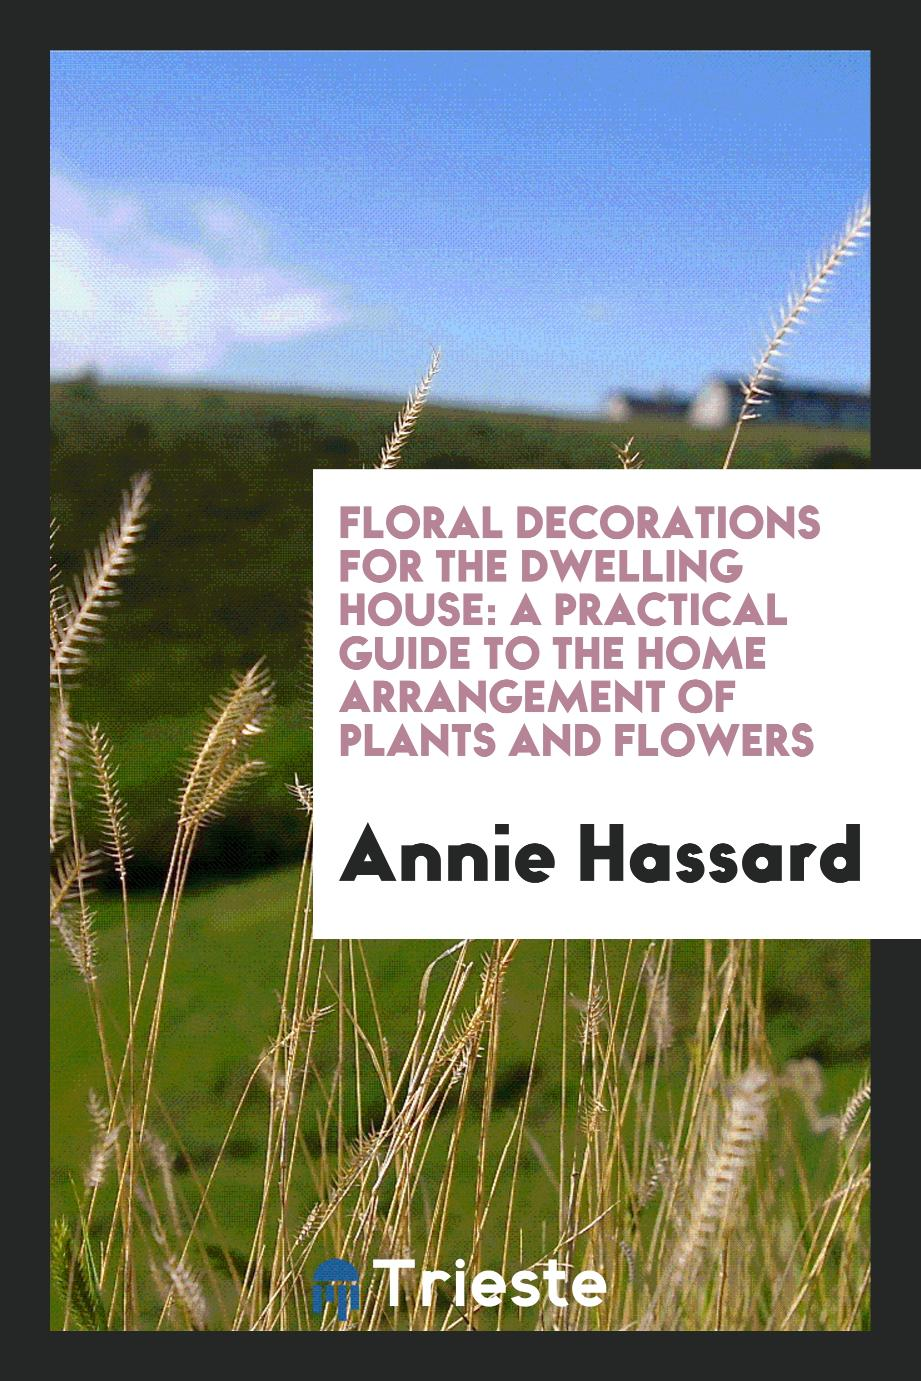 Floral Decorations for the Dwelling House: A Practical Guide to the Home Arrangement of Plants and Flowers